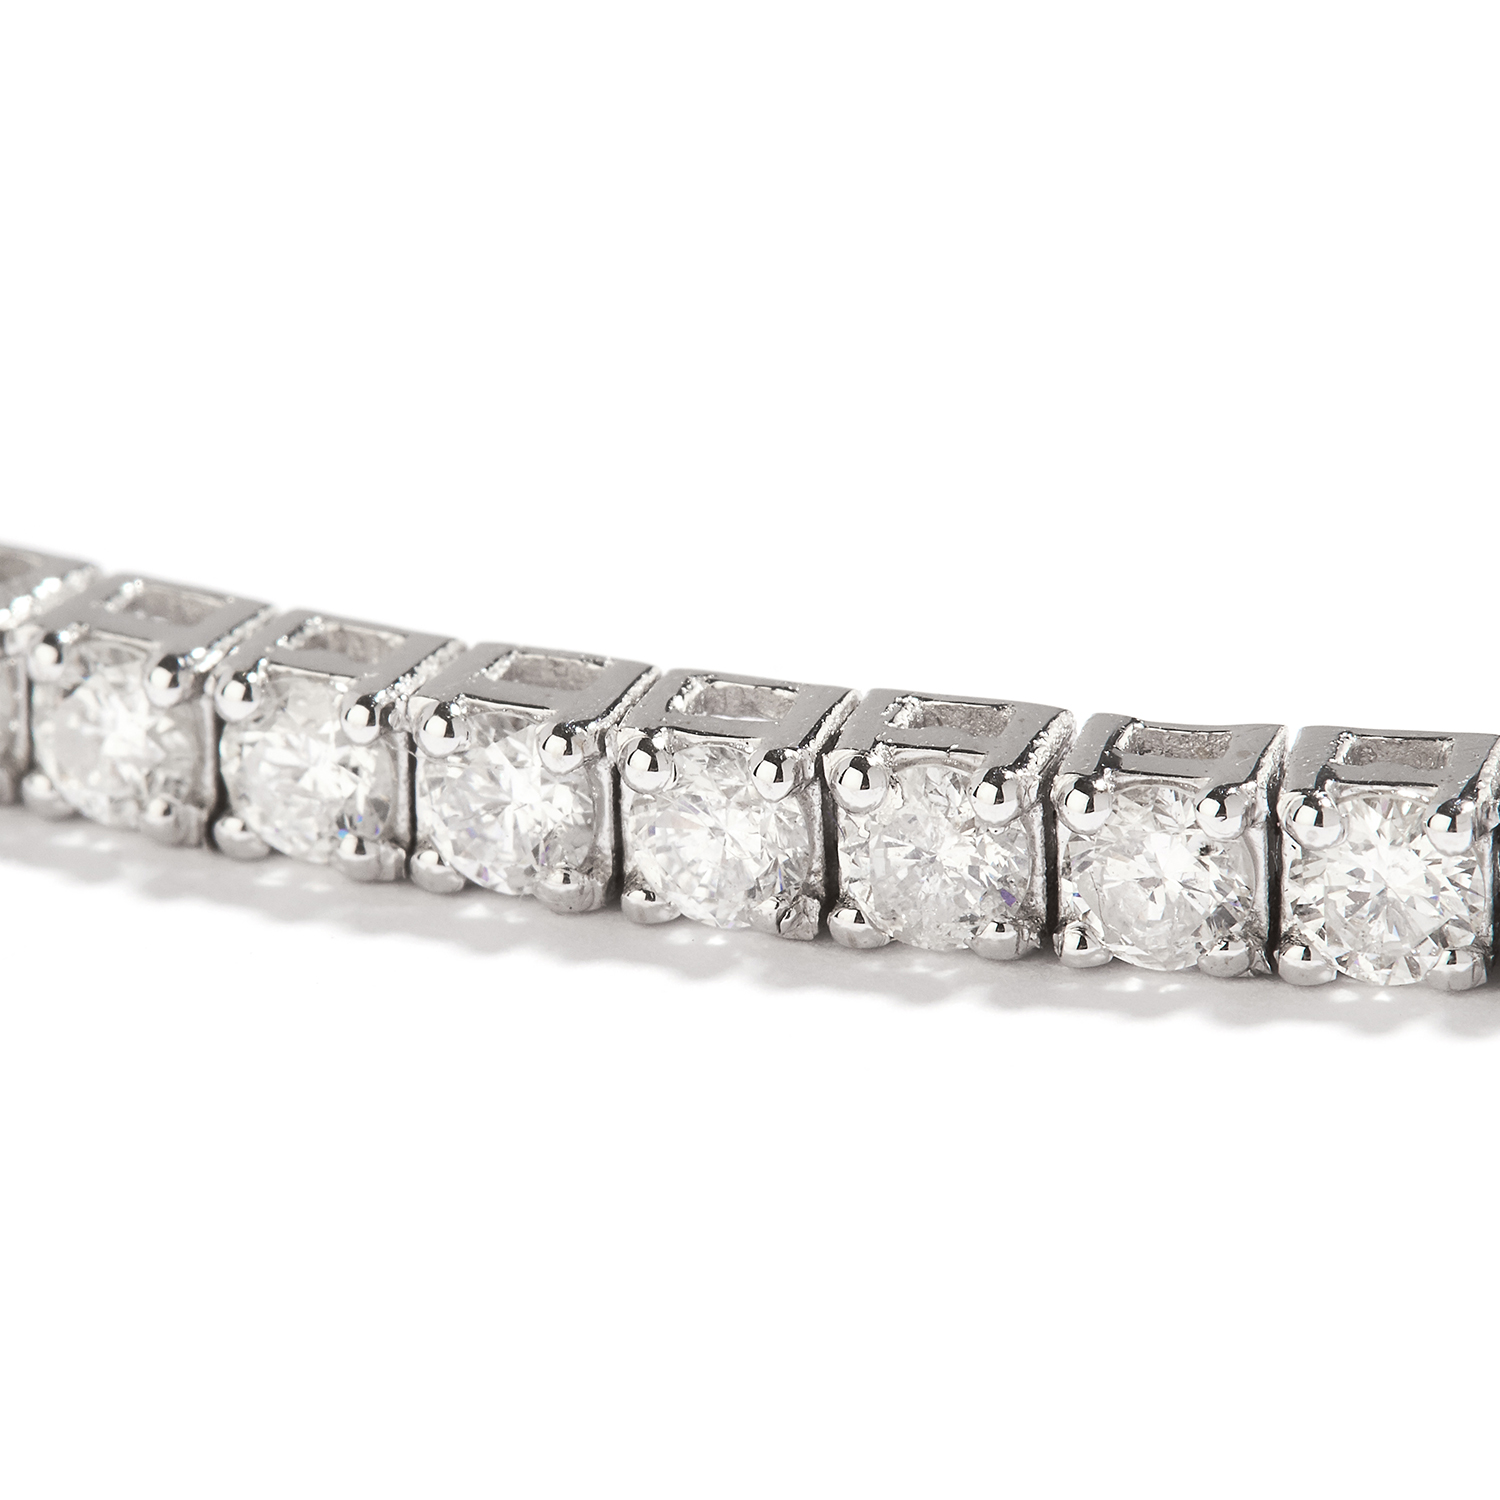 Los 12 - 5.60 CART DIAMOND LINE BRACELET in 18ct white gold, comprising a single row of round cut diamonds,